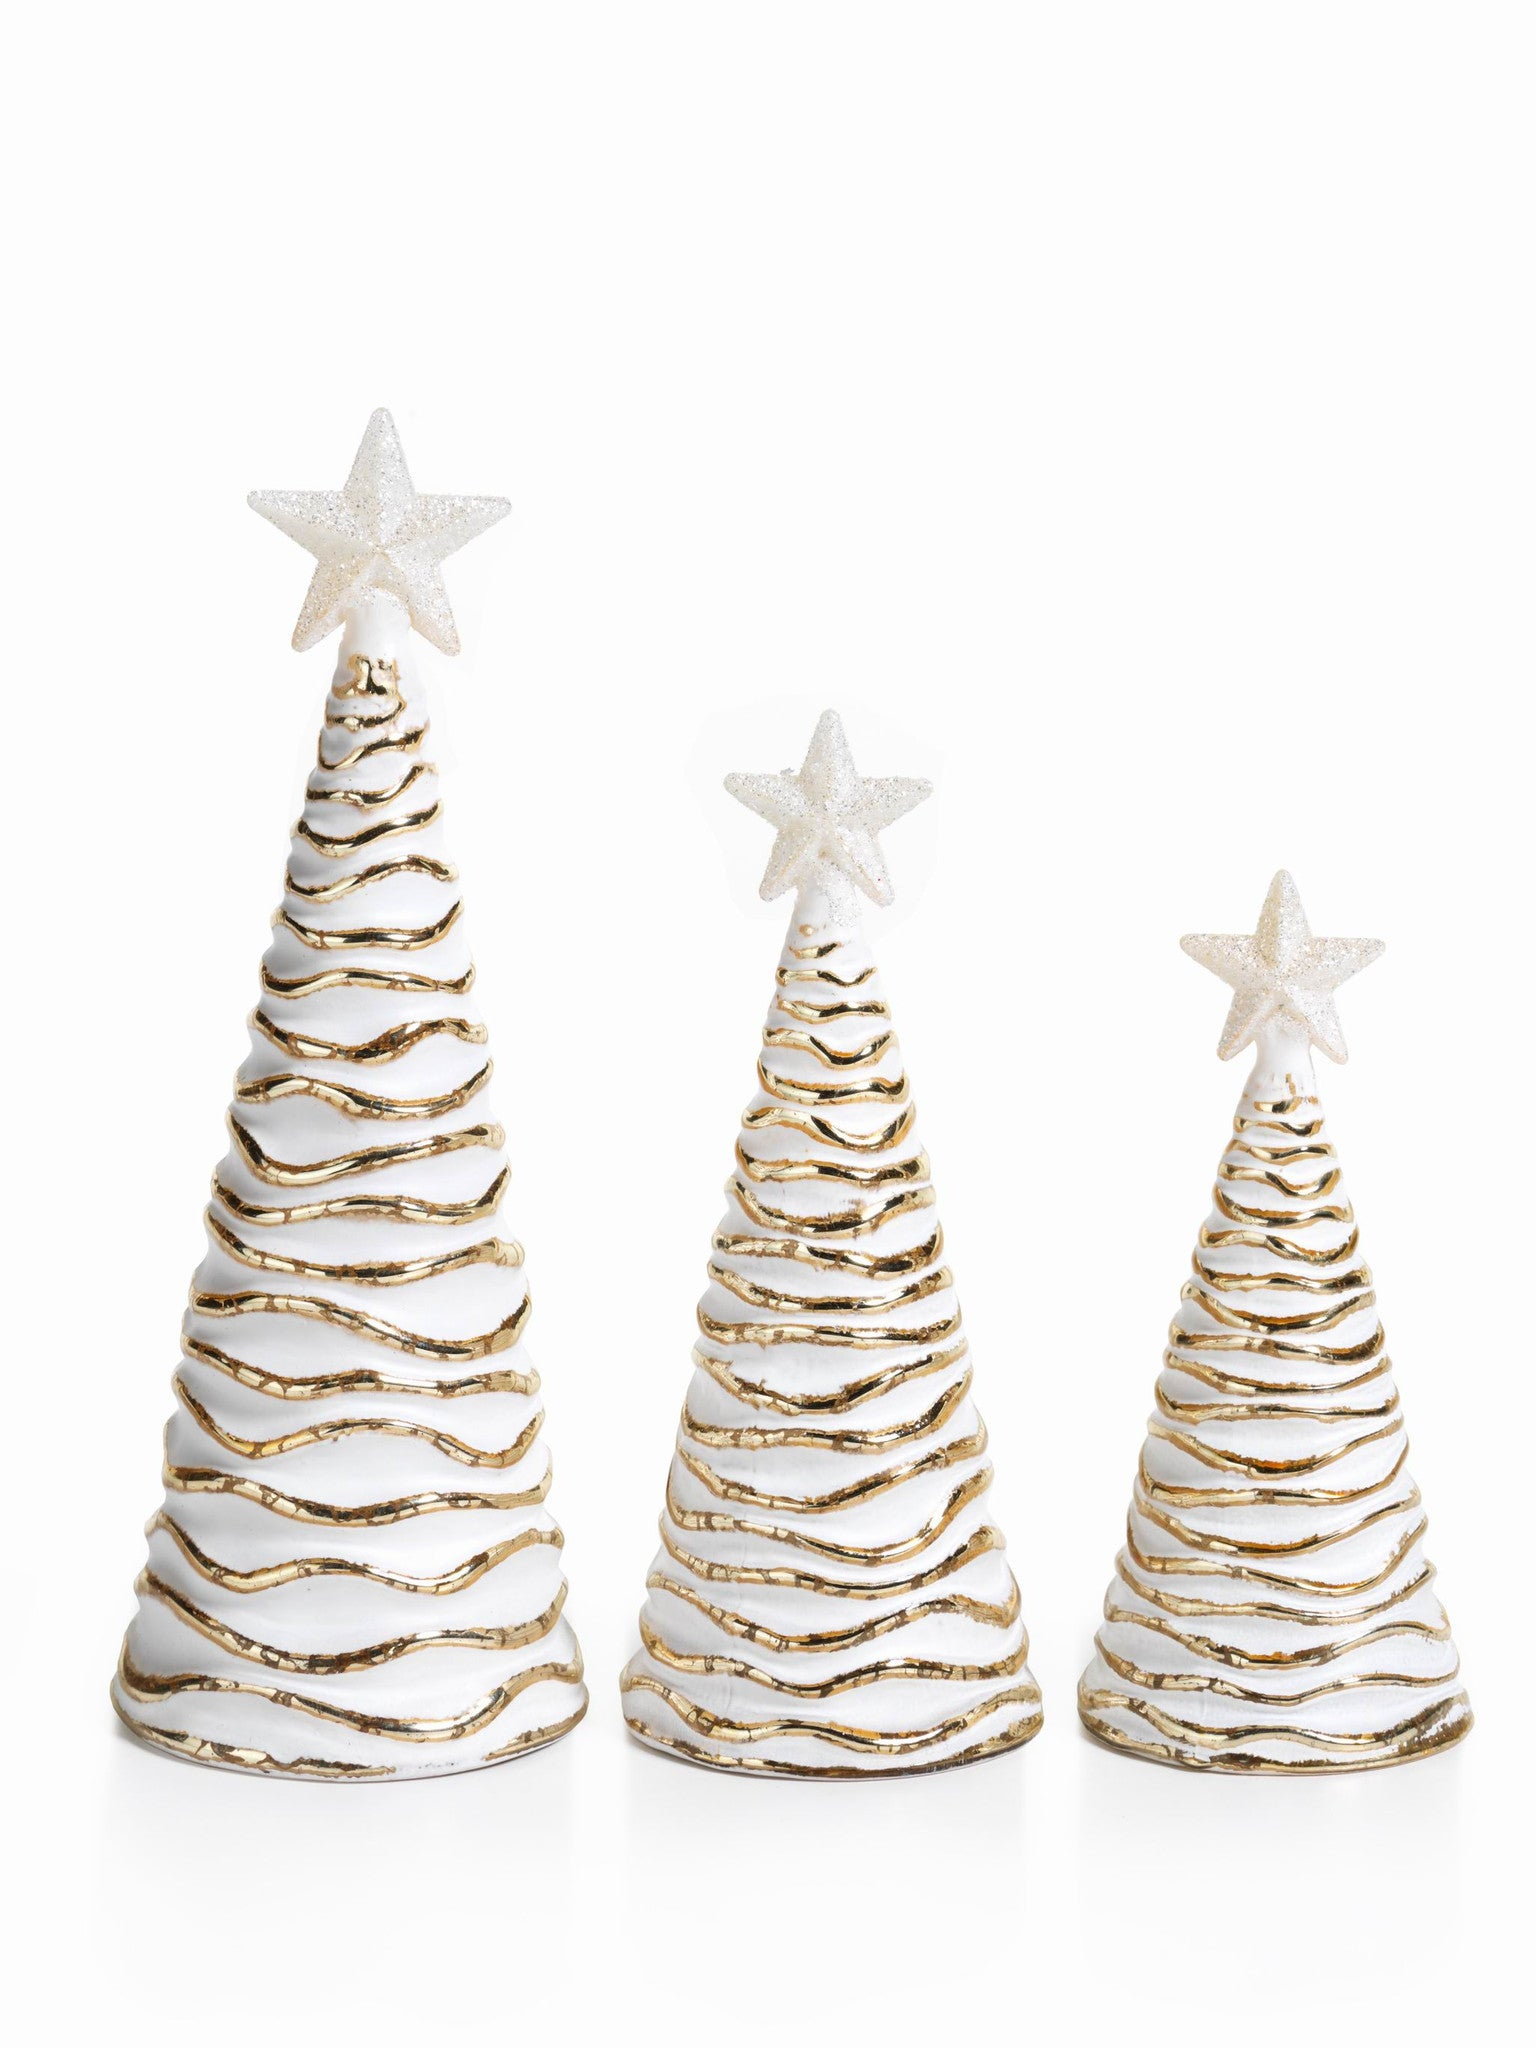 LED Glass Decorative Tree - Gold - Set of 6 -  - CARLYLE AVENUE - 2